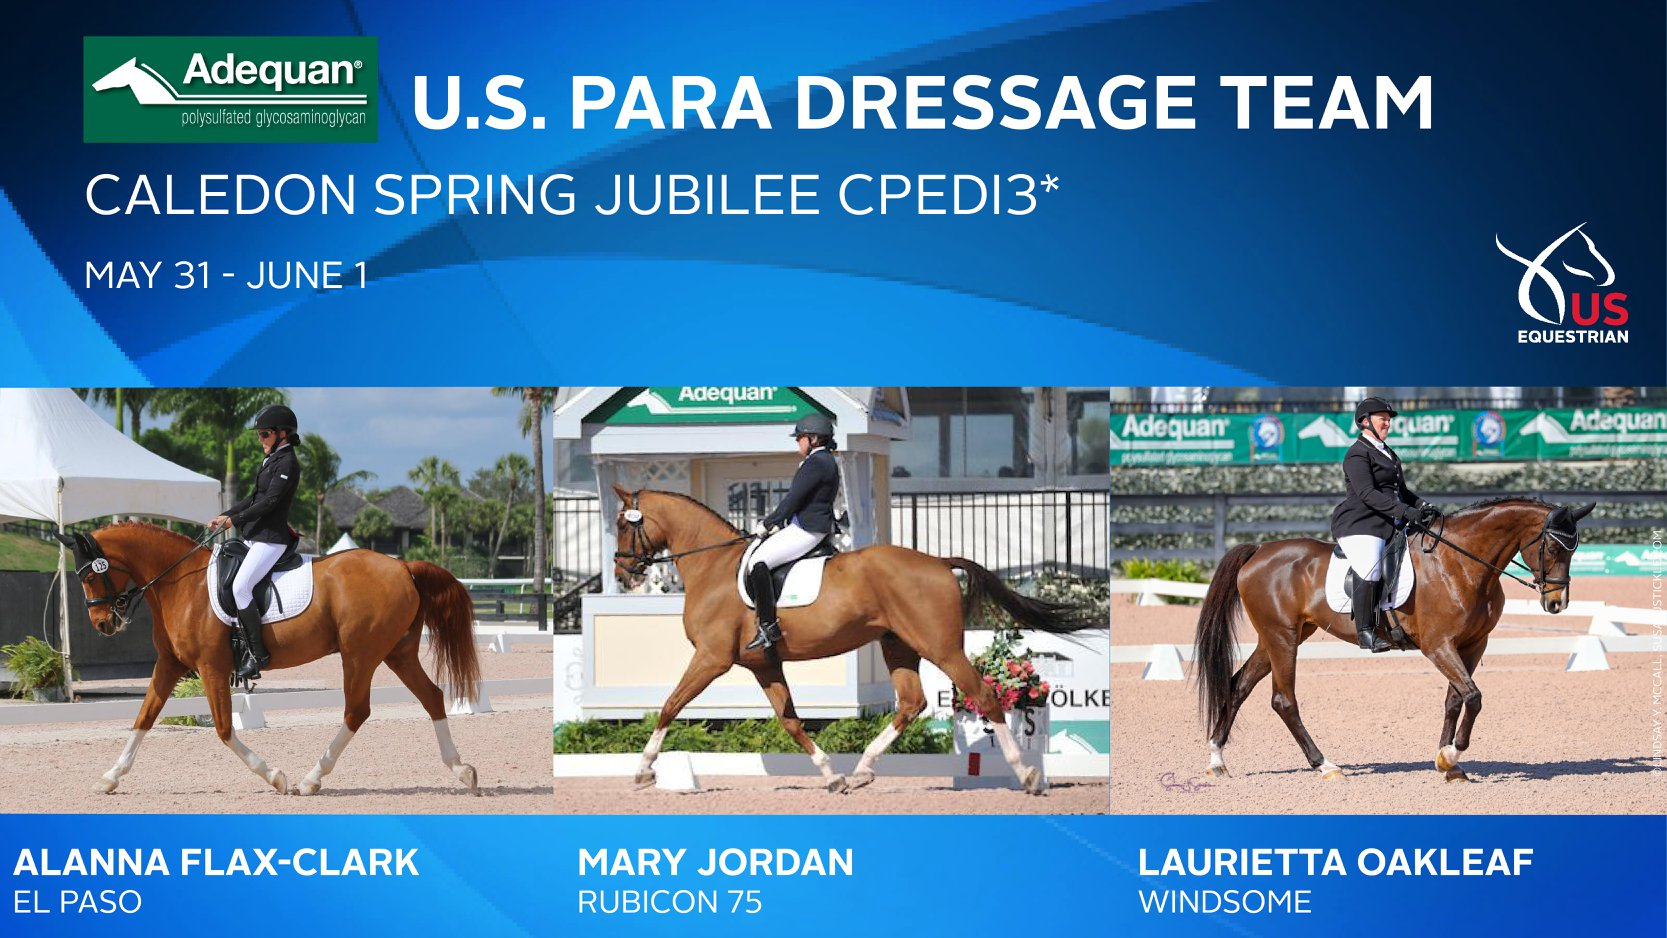 U.S. Equestrian Announces Adequan U.S. ParaDressage Team for Caledon Spring Jubilee CPEDI3*